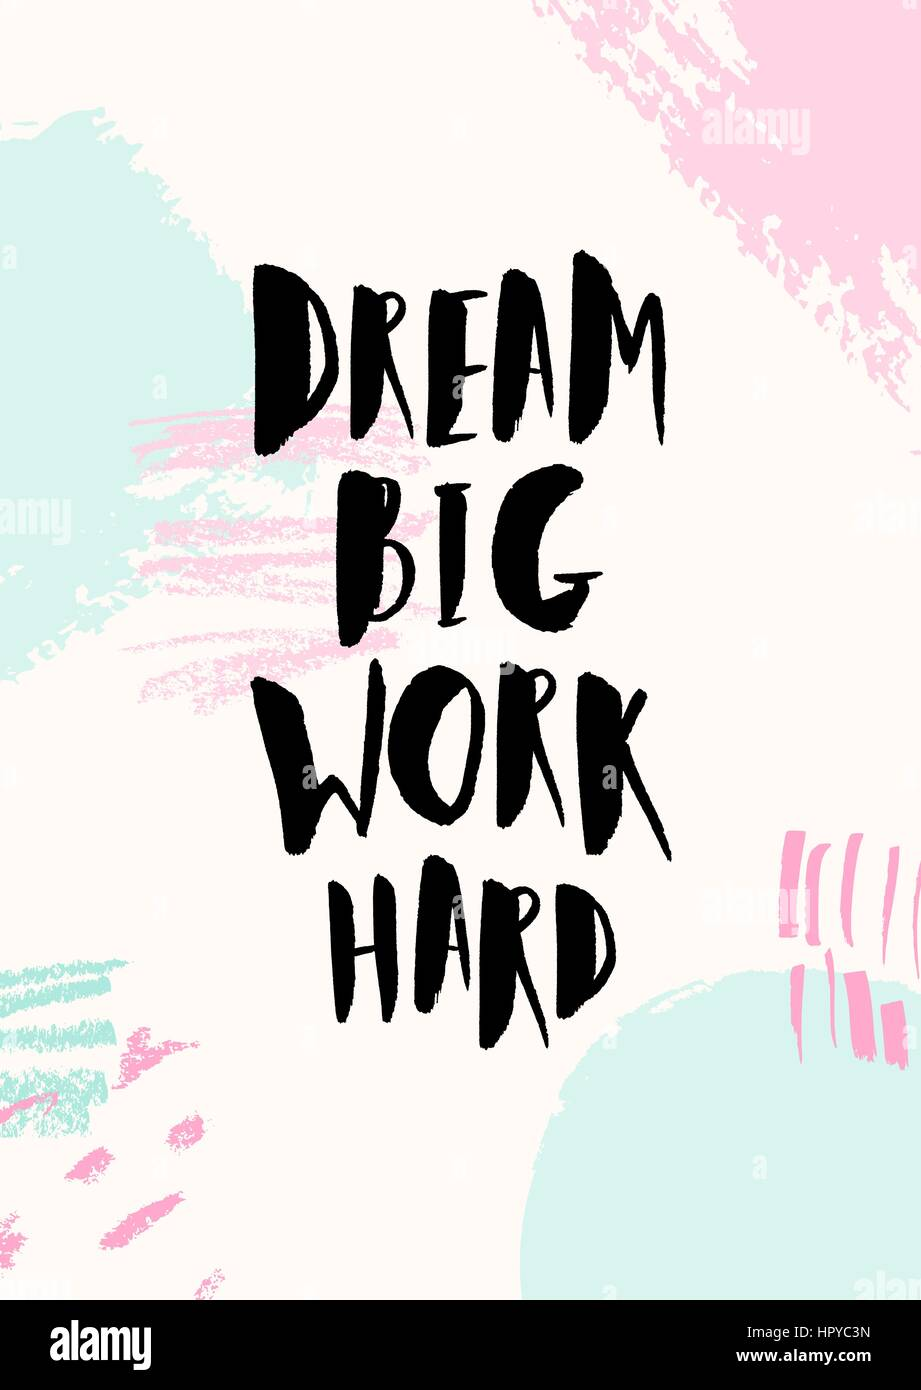 Dream Big Work Hard - inspirational quote poster design ...